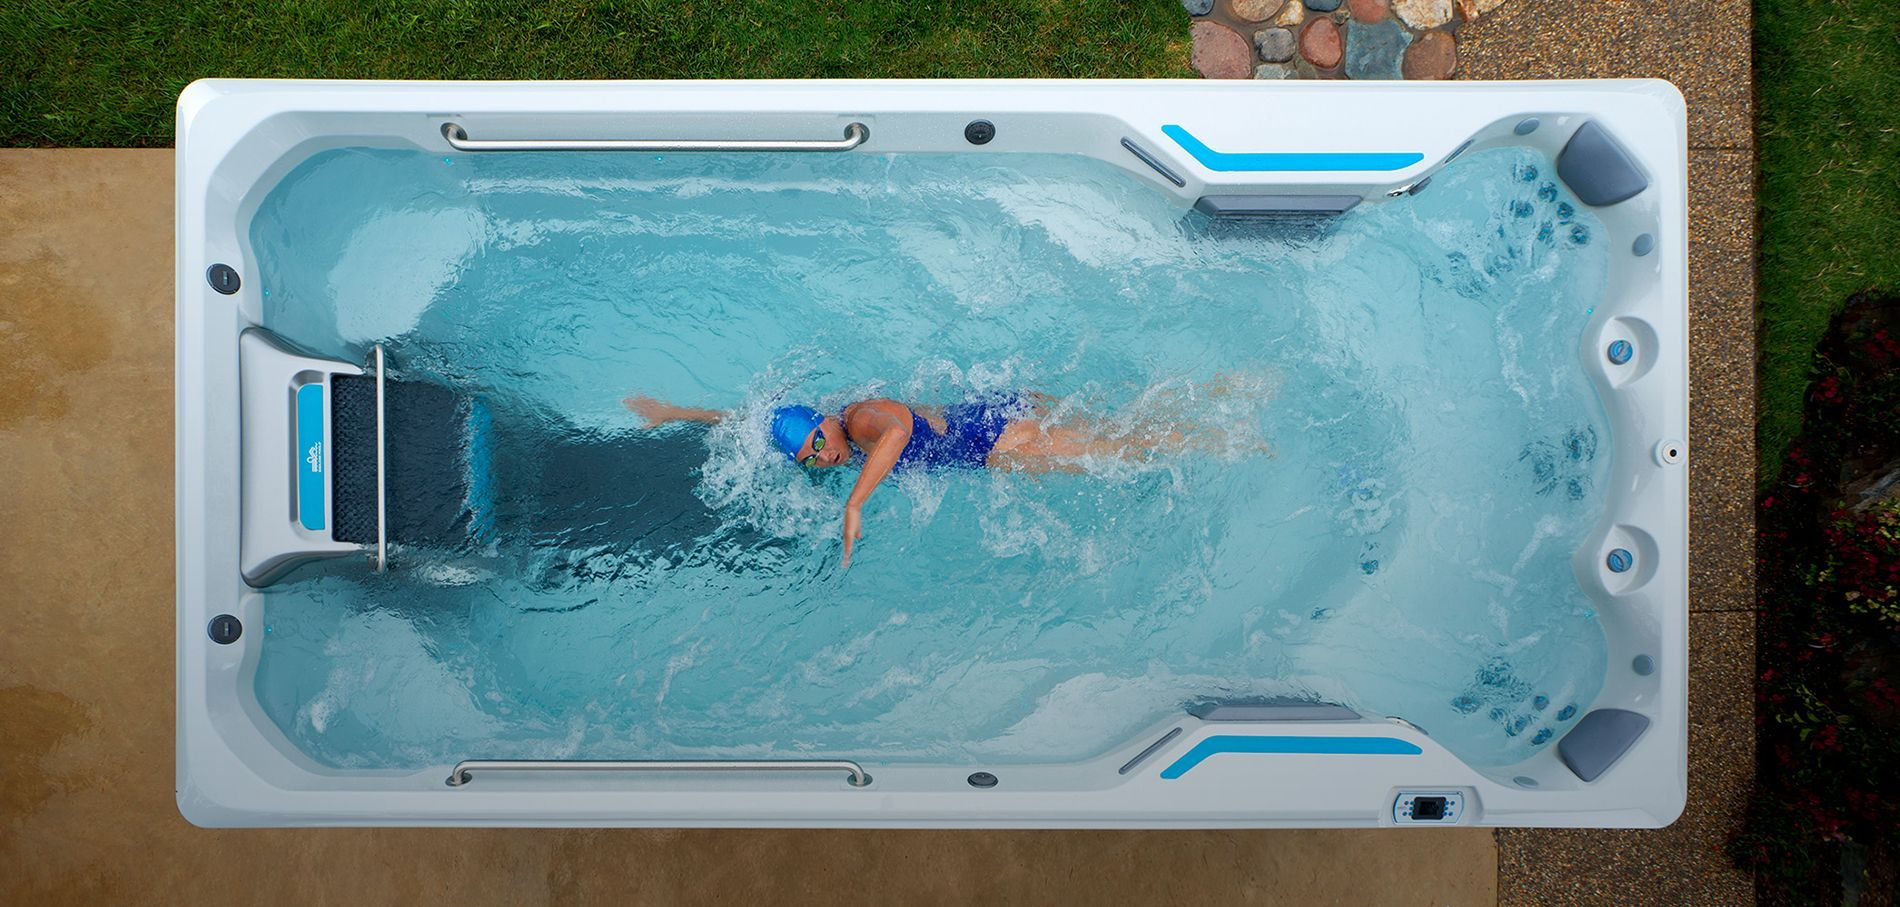 We Ll Install And Maintain Your Swim Spa For You You Won T Have To Worry About A Thing Visit Our Store In Fri Endless Pool Cool Swimming Pools Swimming Pools